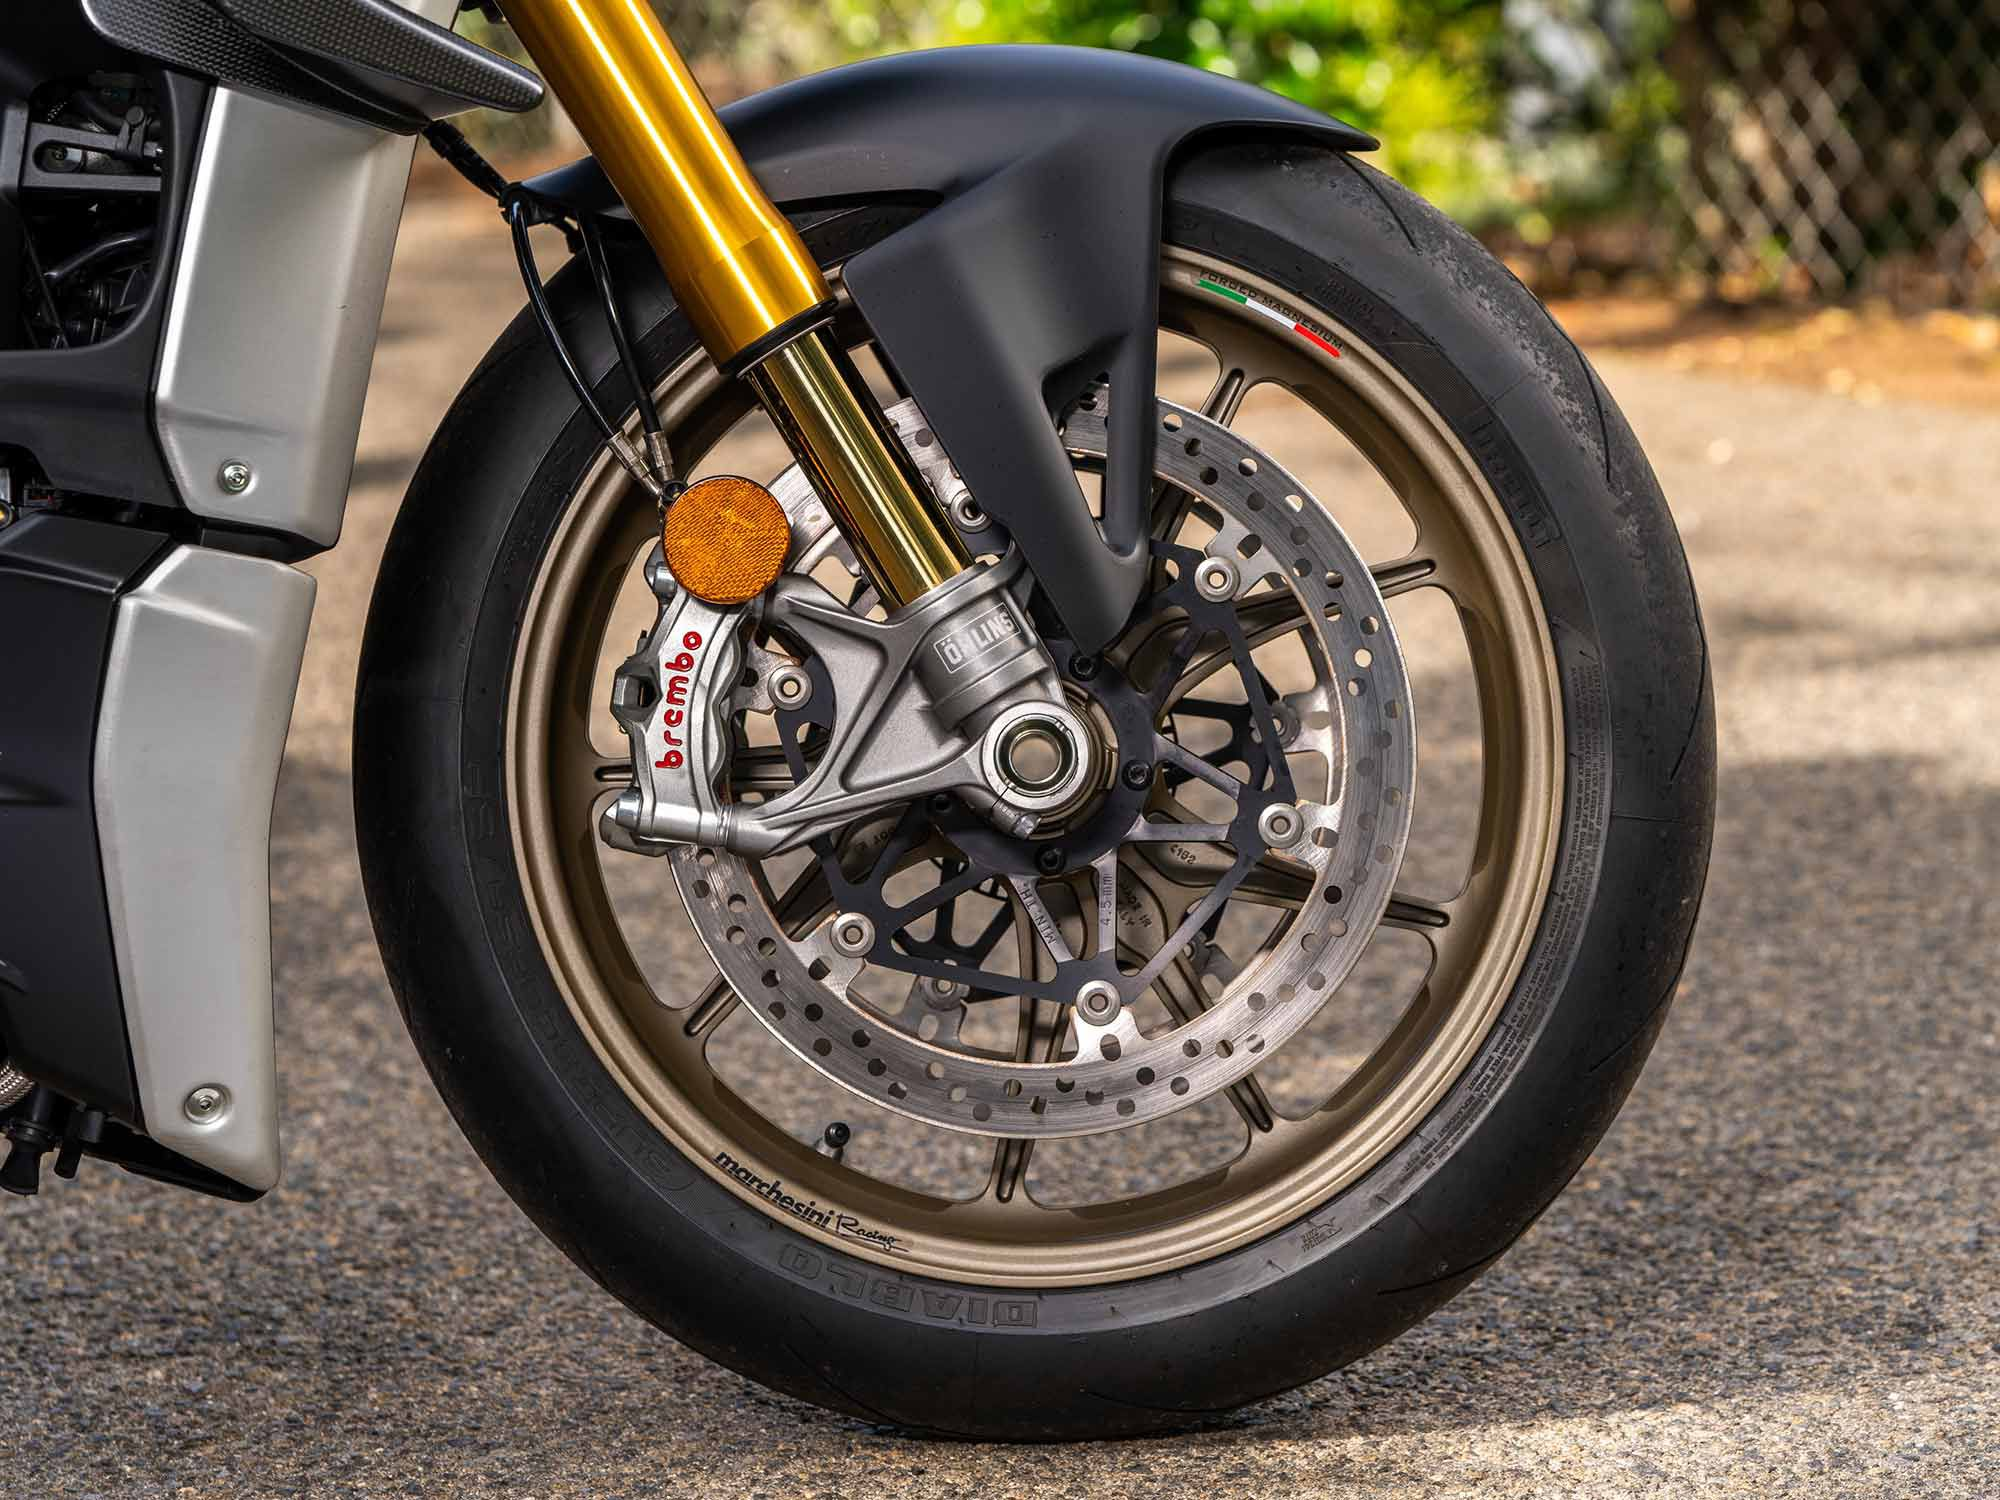 This Streetfighter V4 S project bike rolls on a set of forged magnesium wheels from Marchesini ($5,227.50). The wheels are 1.5 pounds lighter than the forged alloy setup on the V4 S.